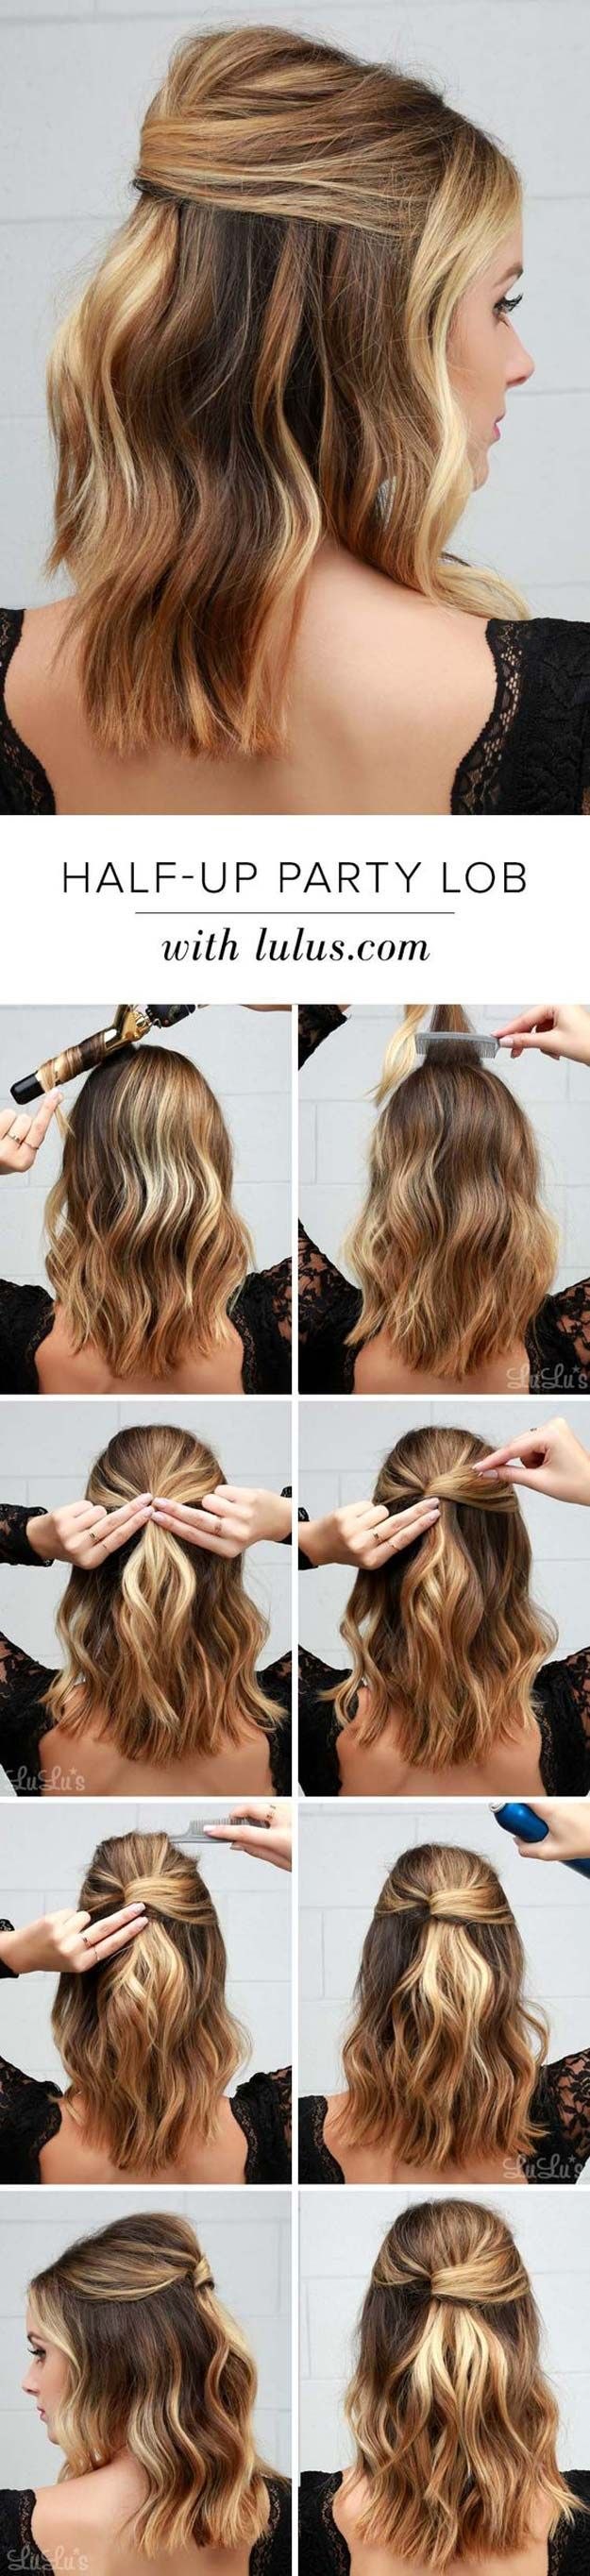 5 cute short hairstyles for school to do yourself 7 fashionglint solutioingenieria Image collections